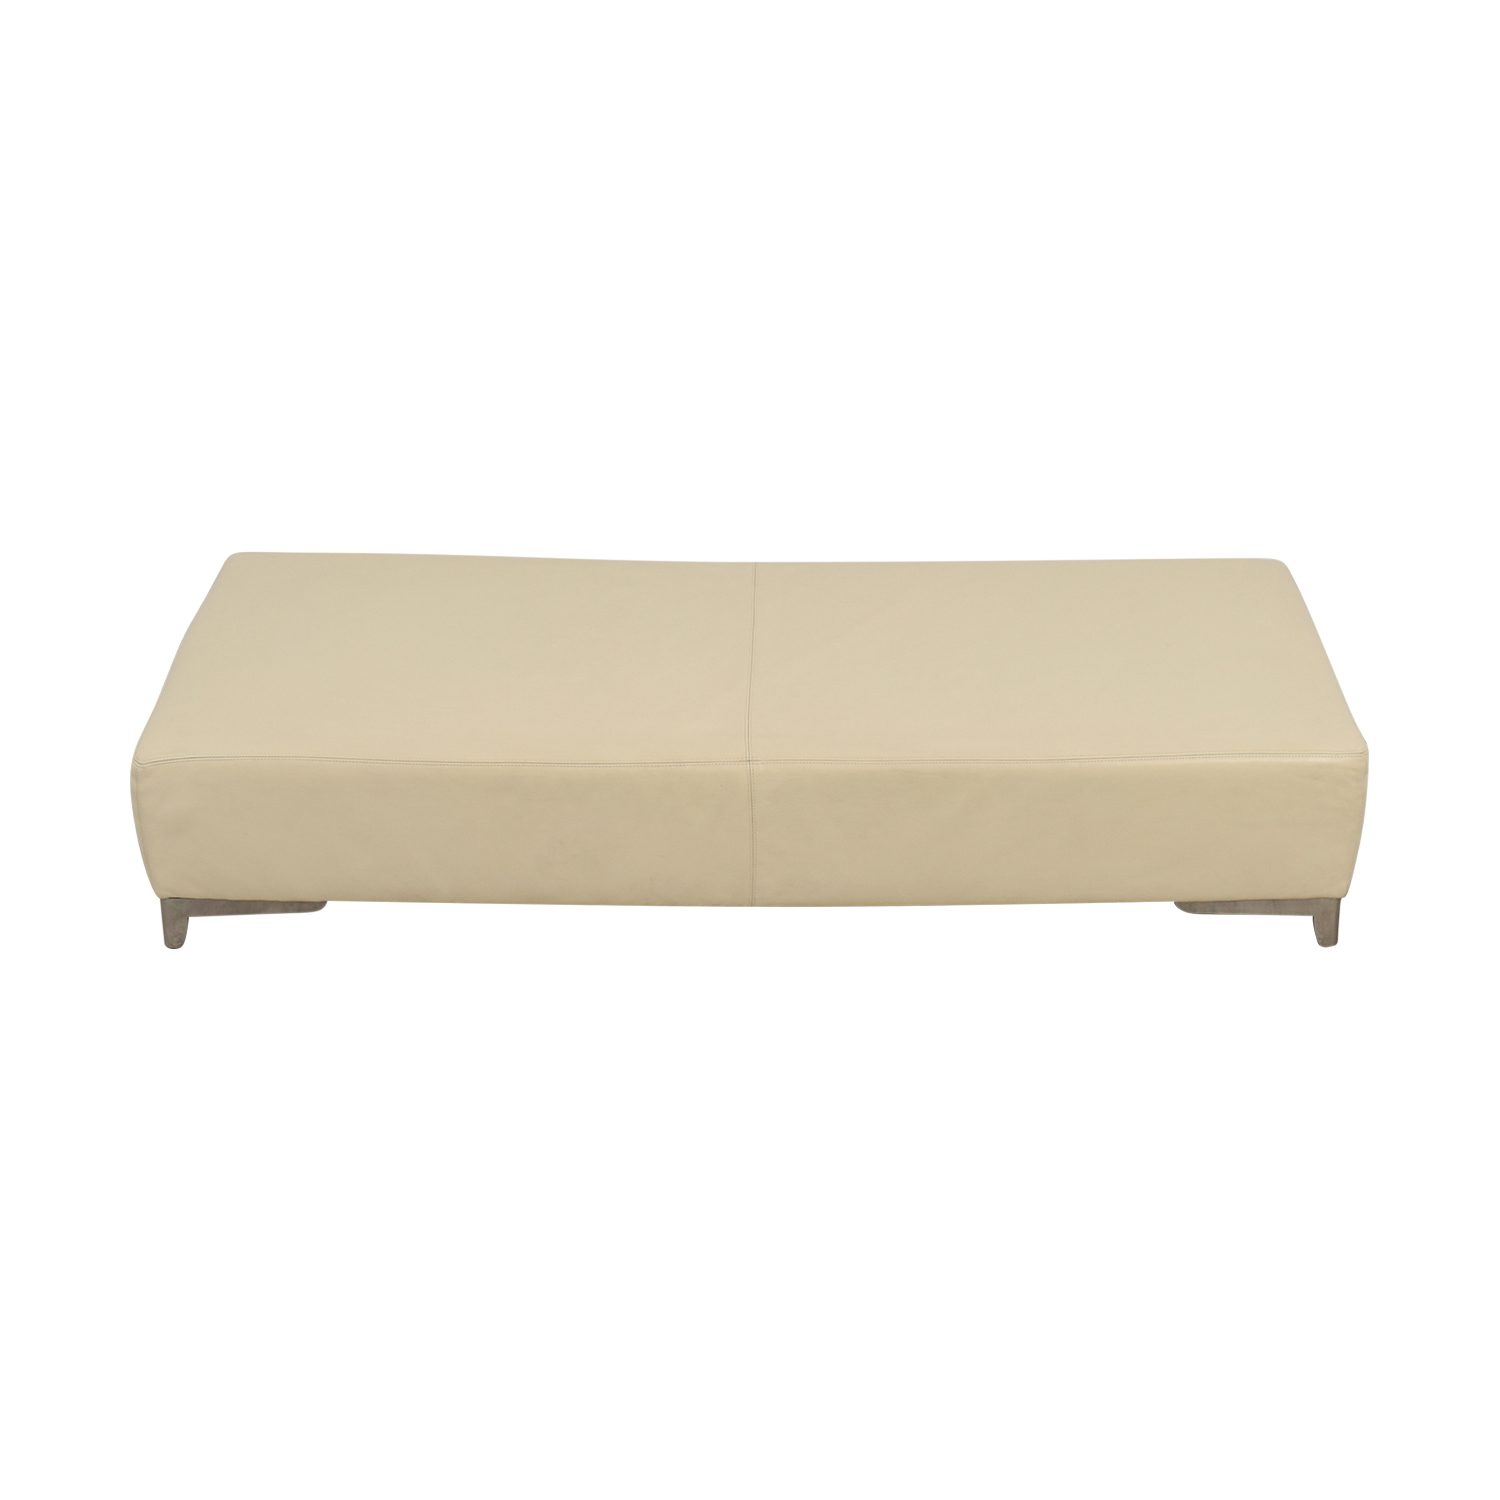 Beige Leather Coffee Table coupon